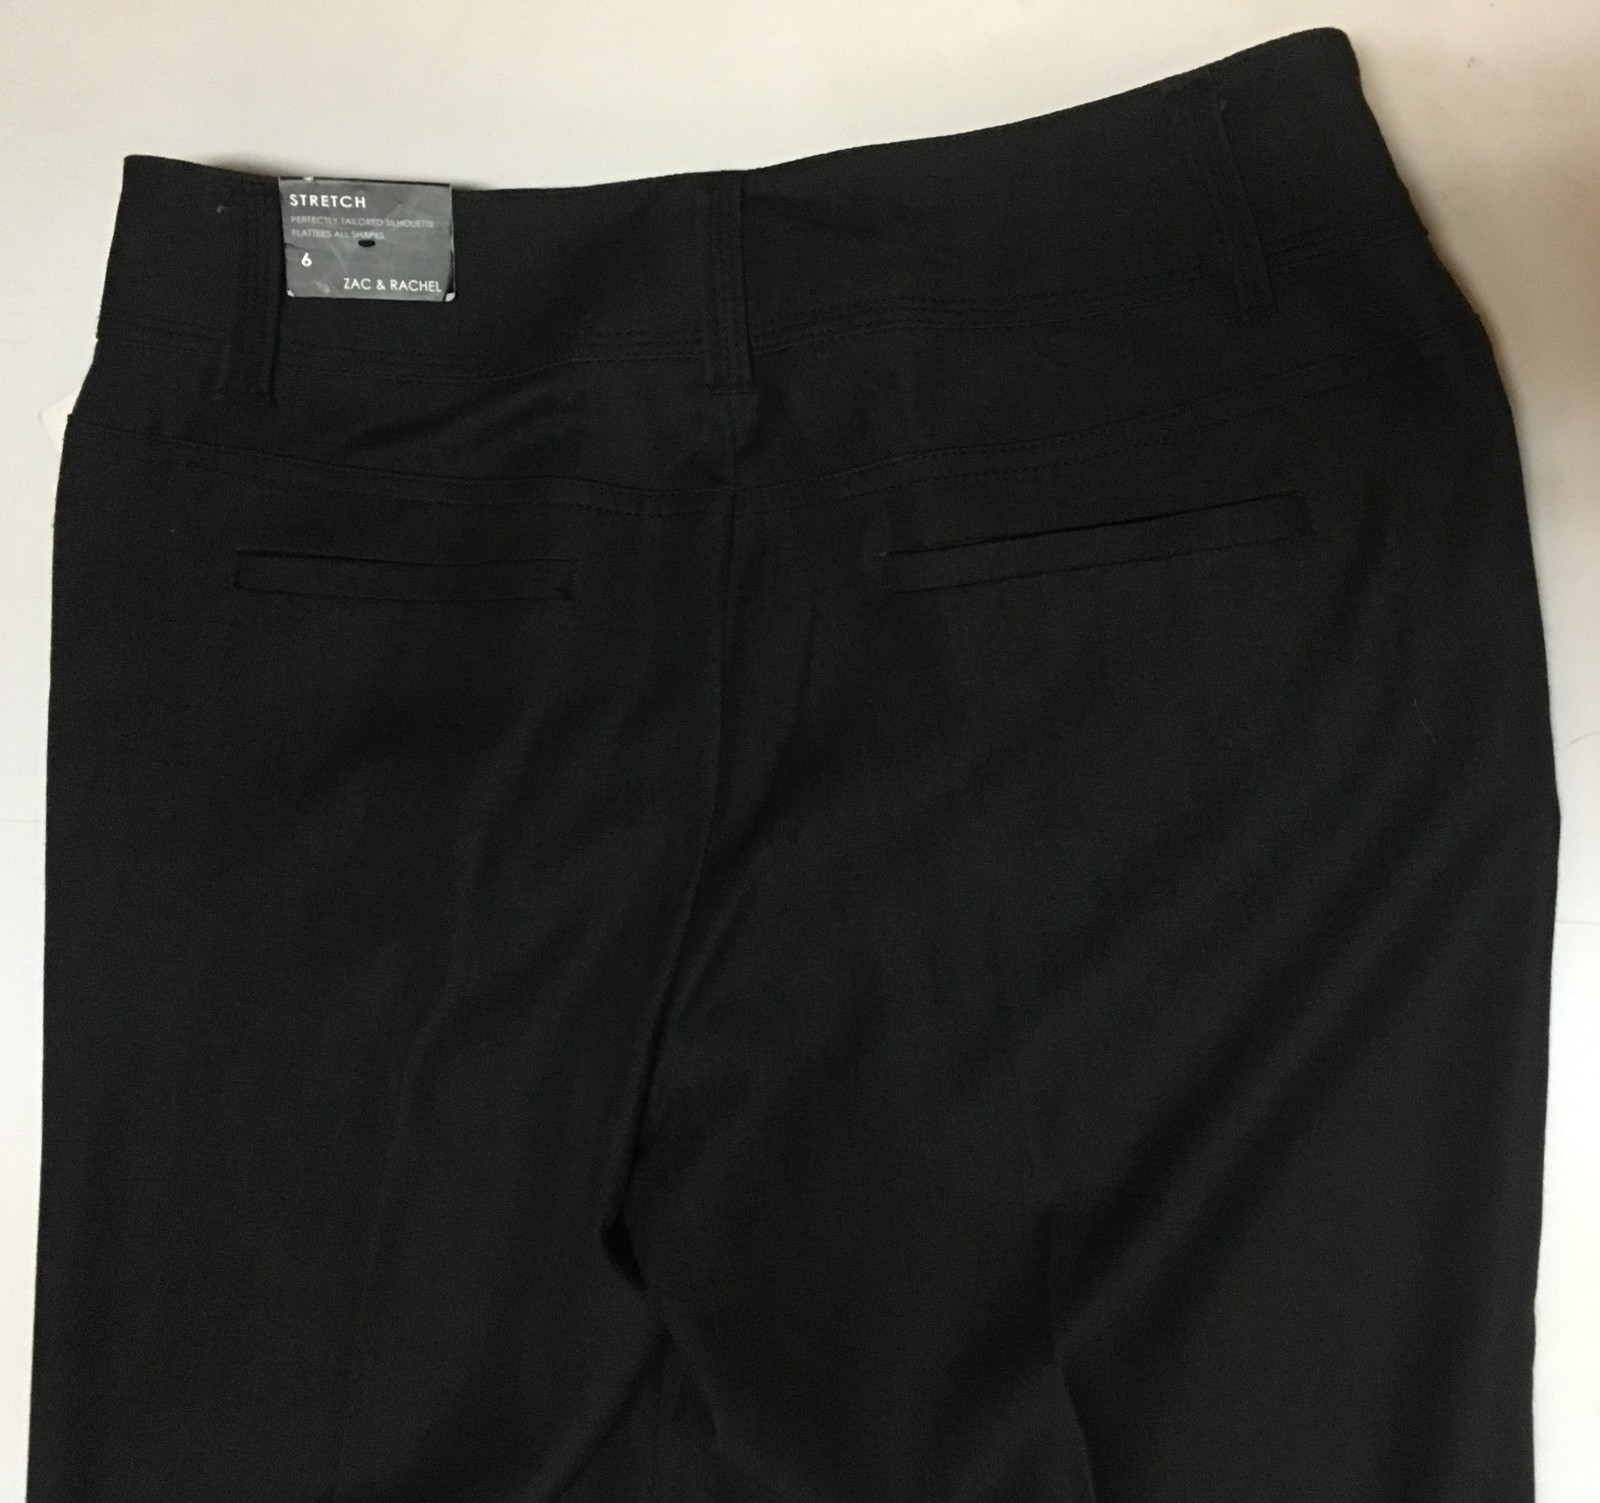 Zac & Rachel Onyx Dress Pants Sz 6 Stretch